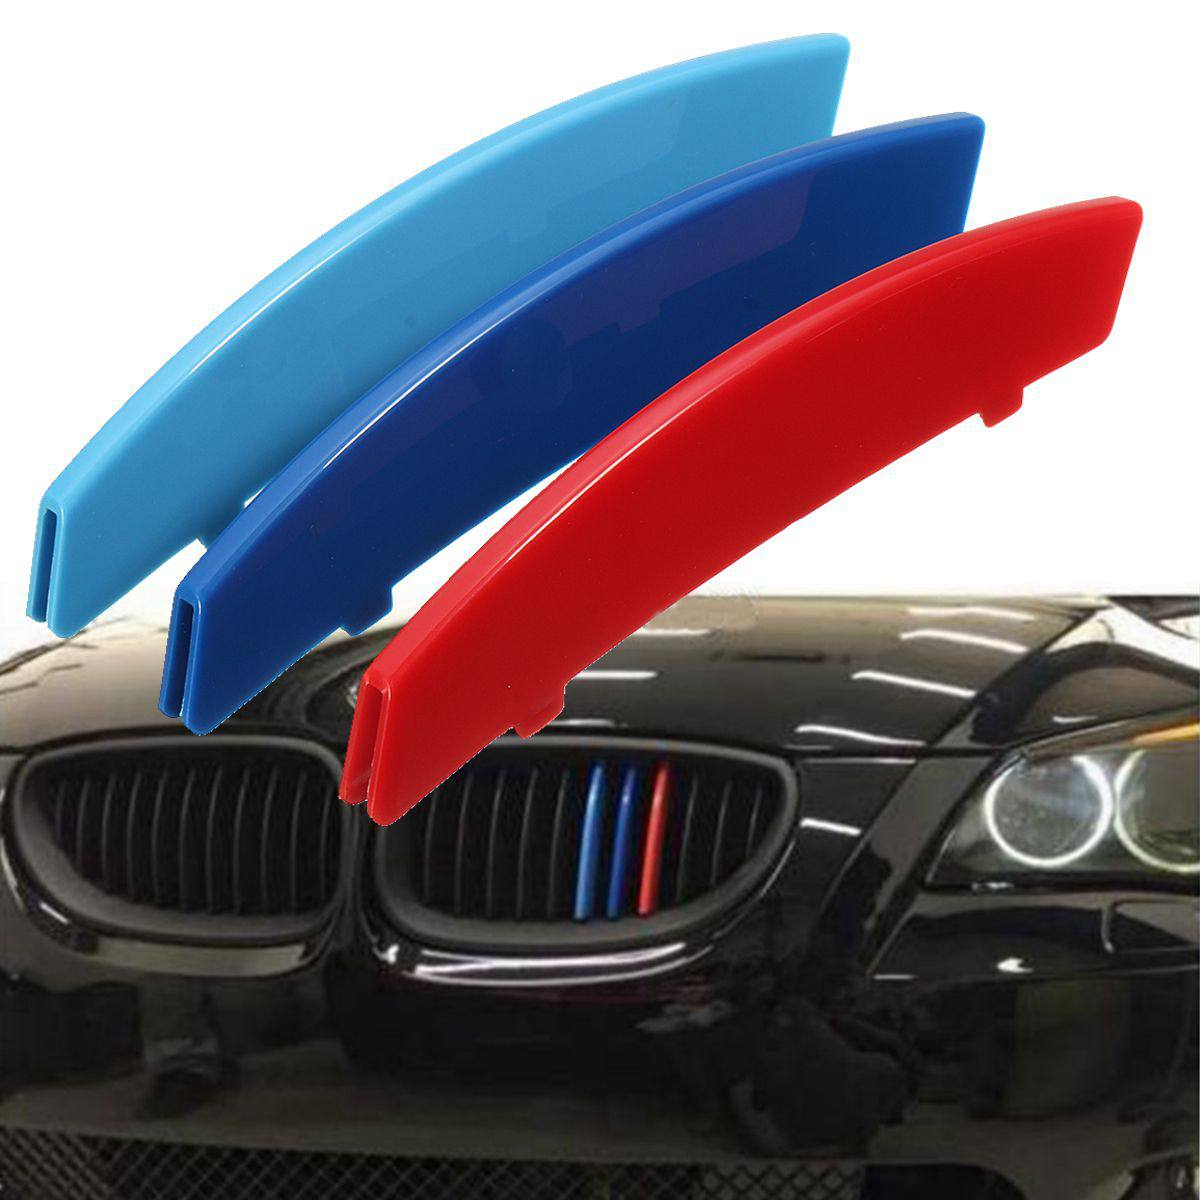 3 Pcs/Set 3D M Car Styling Car Front Grille Sport Strips Cover For BMW 5 E60 2004-2010